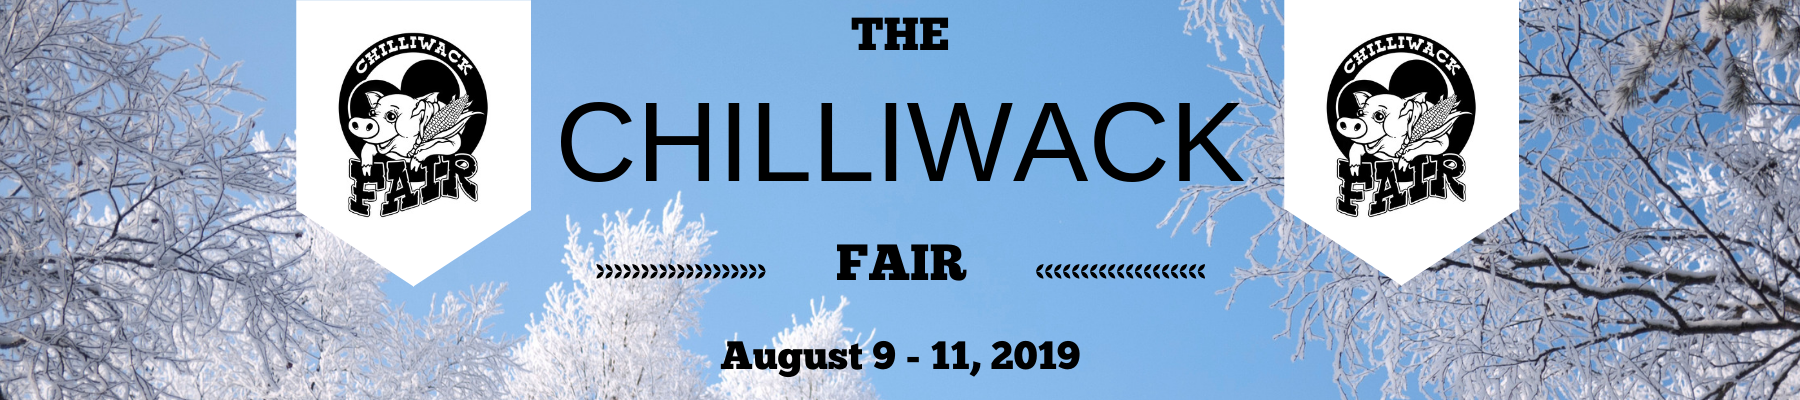 The 147th Annual Chilliwack Fair – under construction